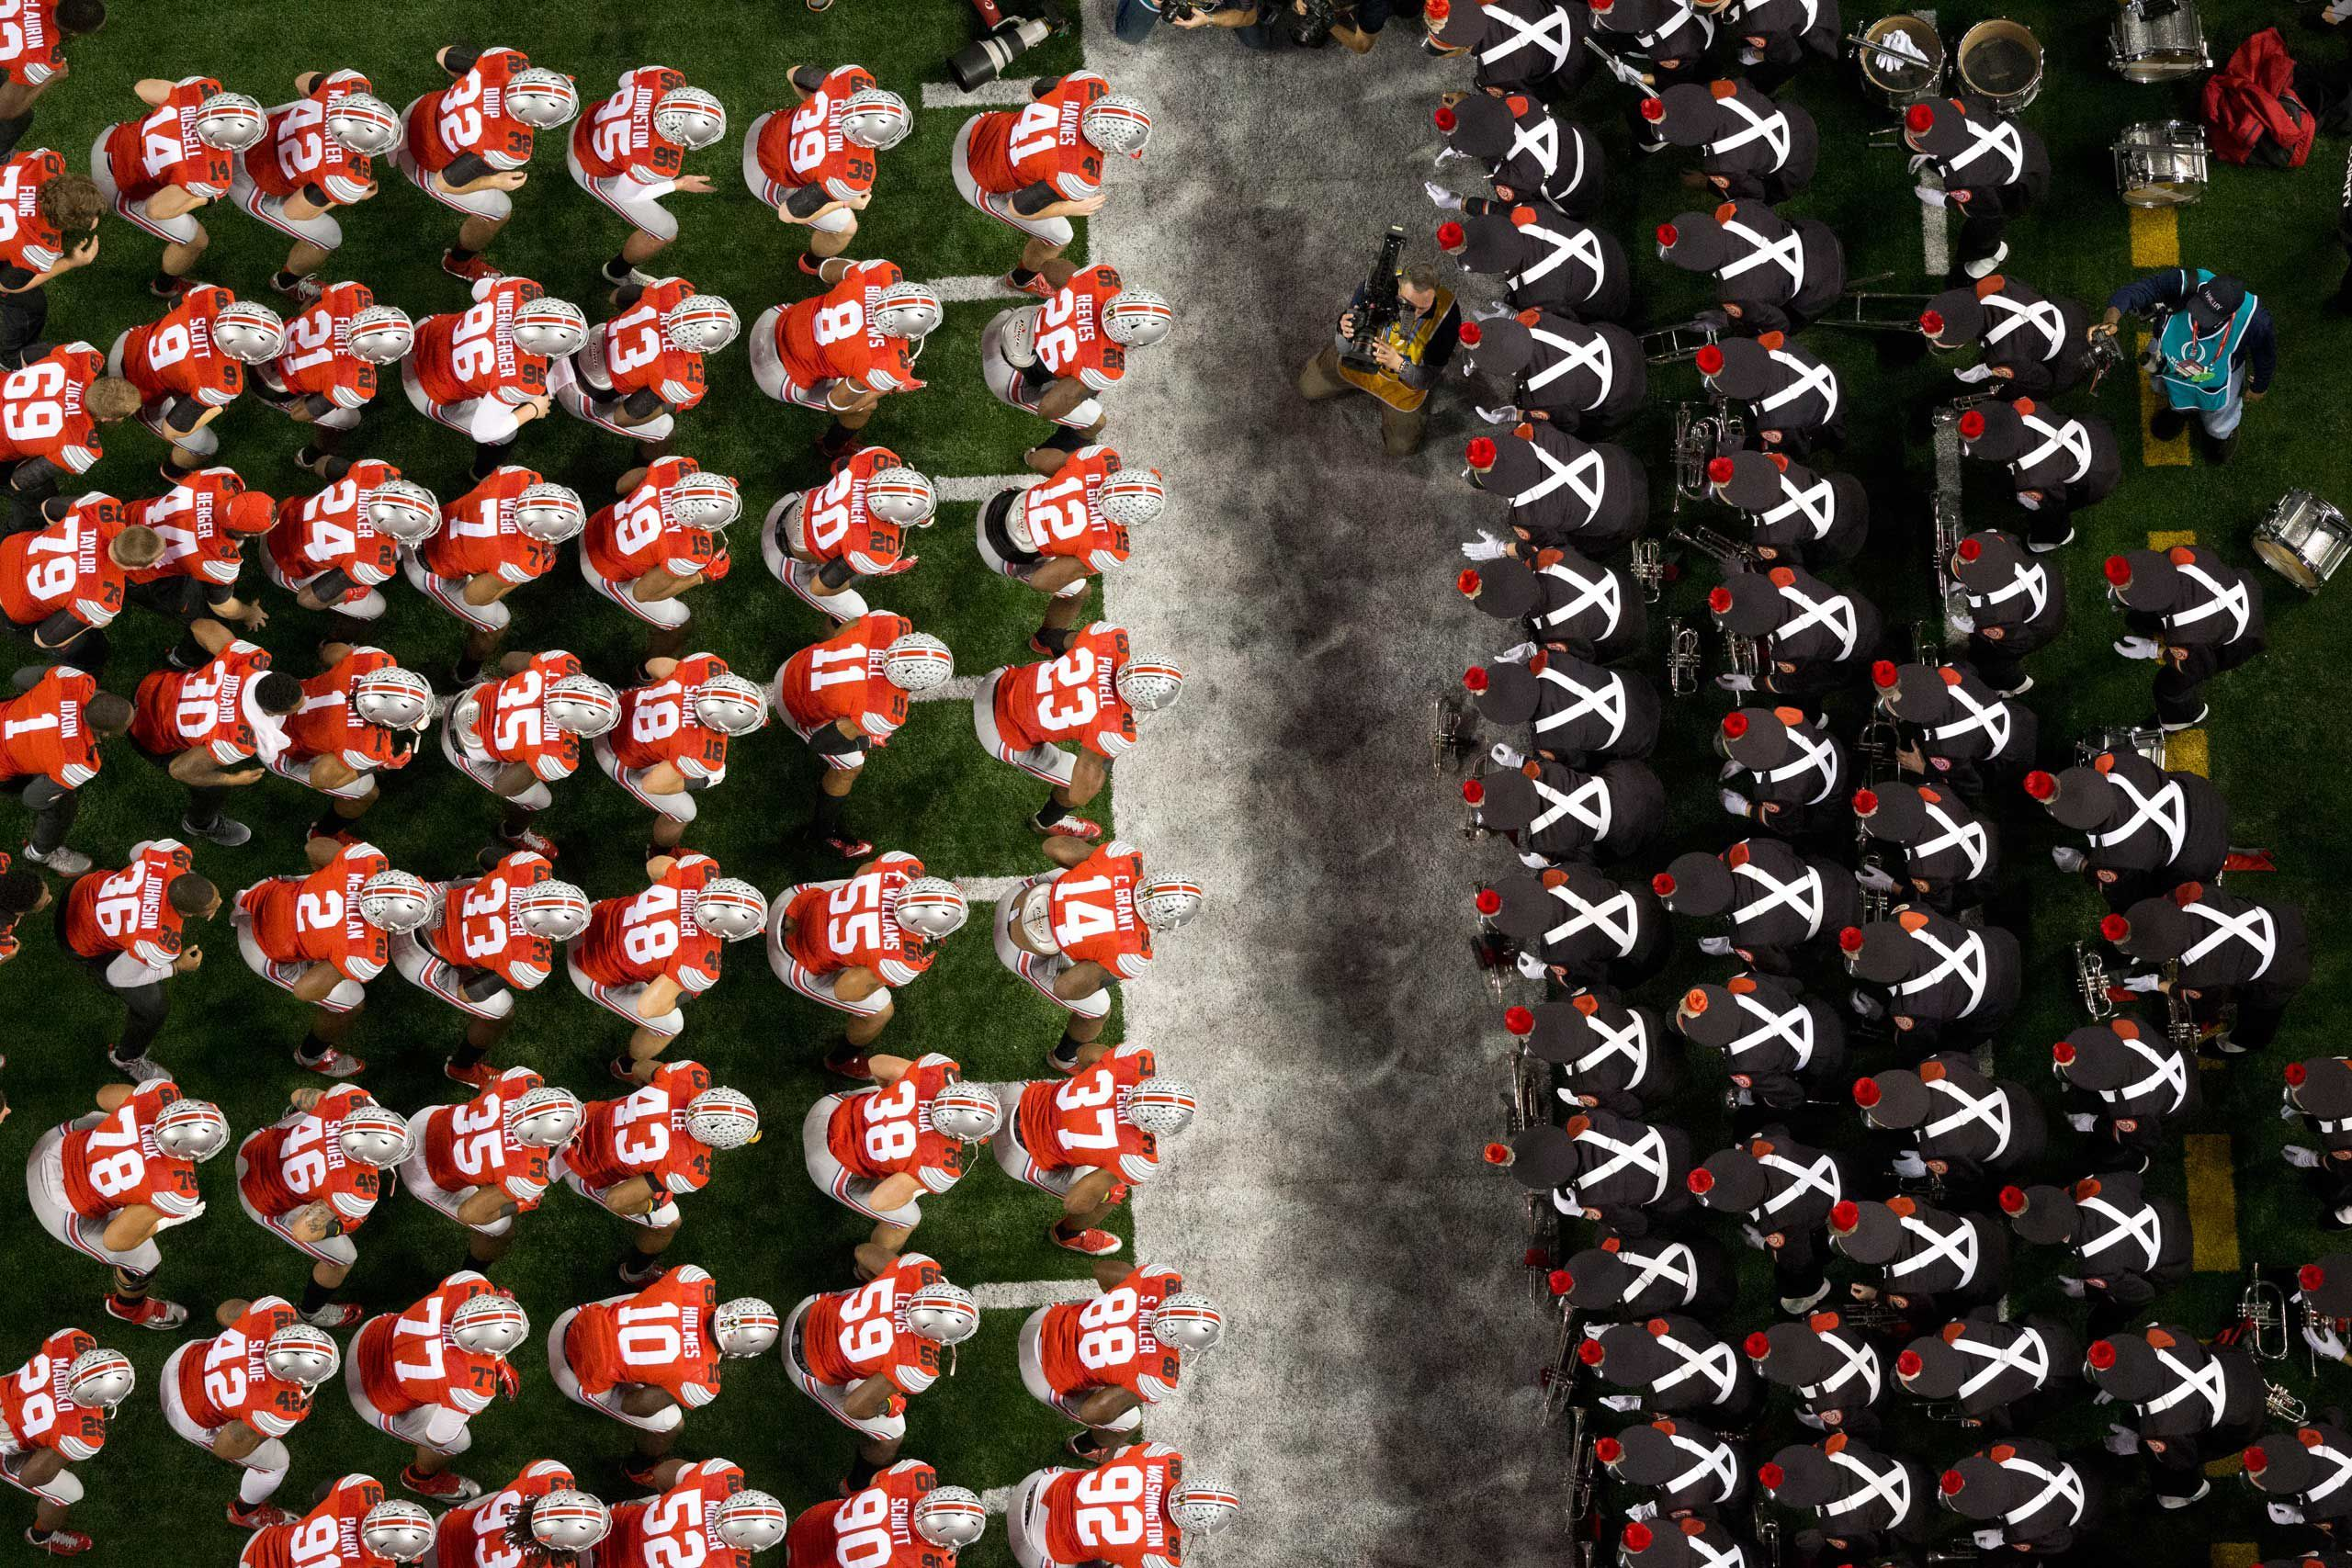 The Best Pictures Of The Week Jan 9 Jan 16 Ohio State Buckeyes Football Ohio State Michigan Ohio State Buckeyes